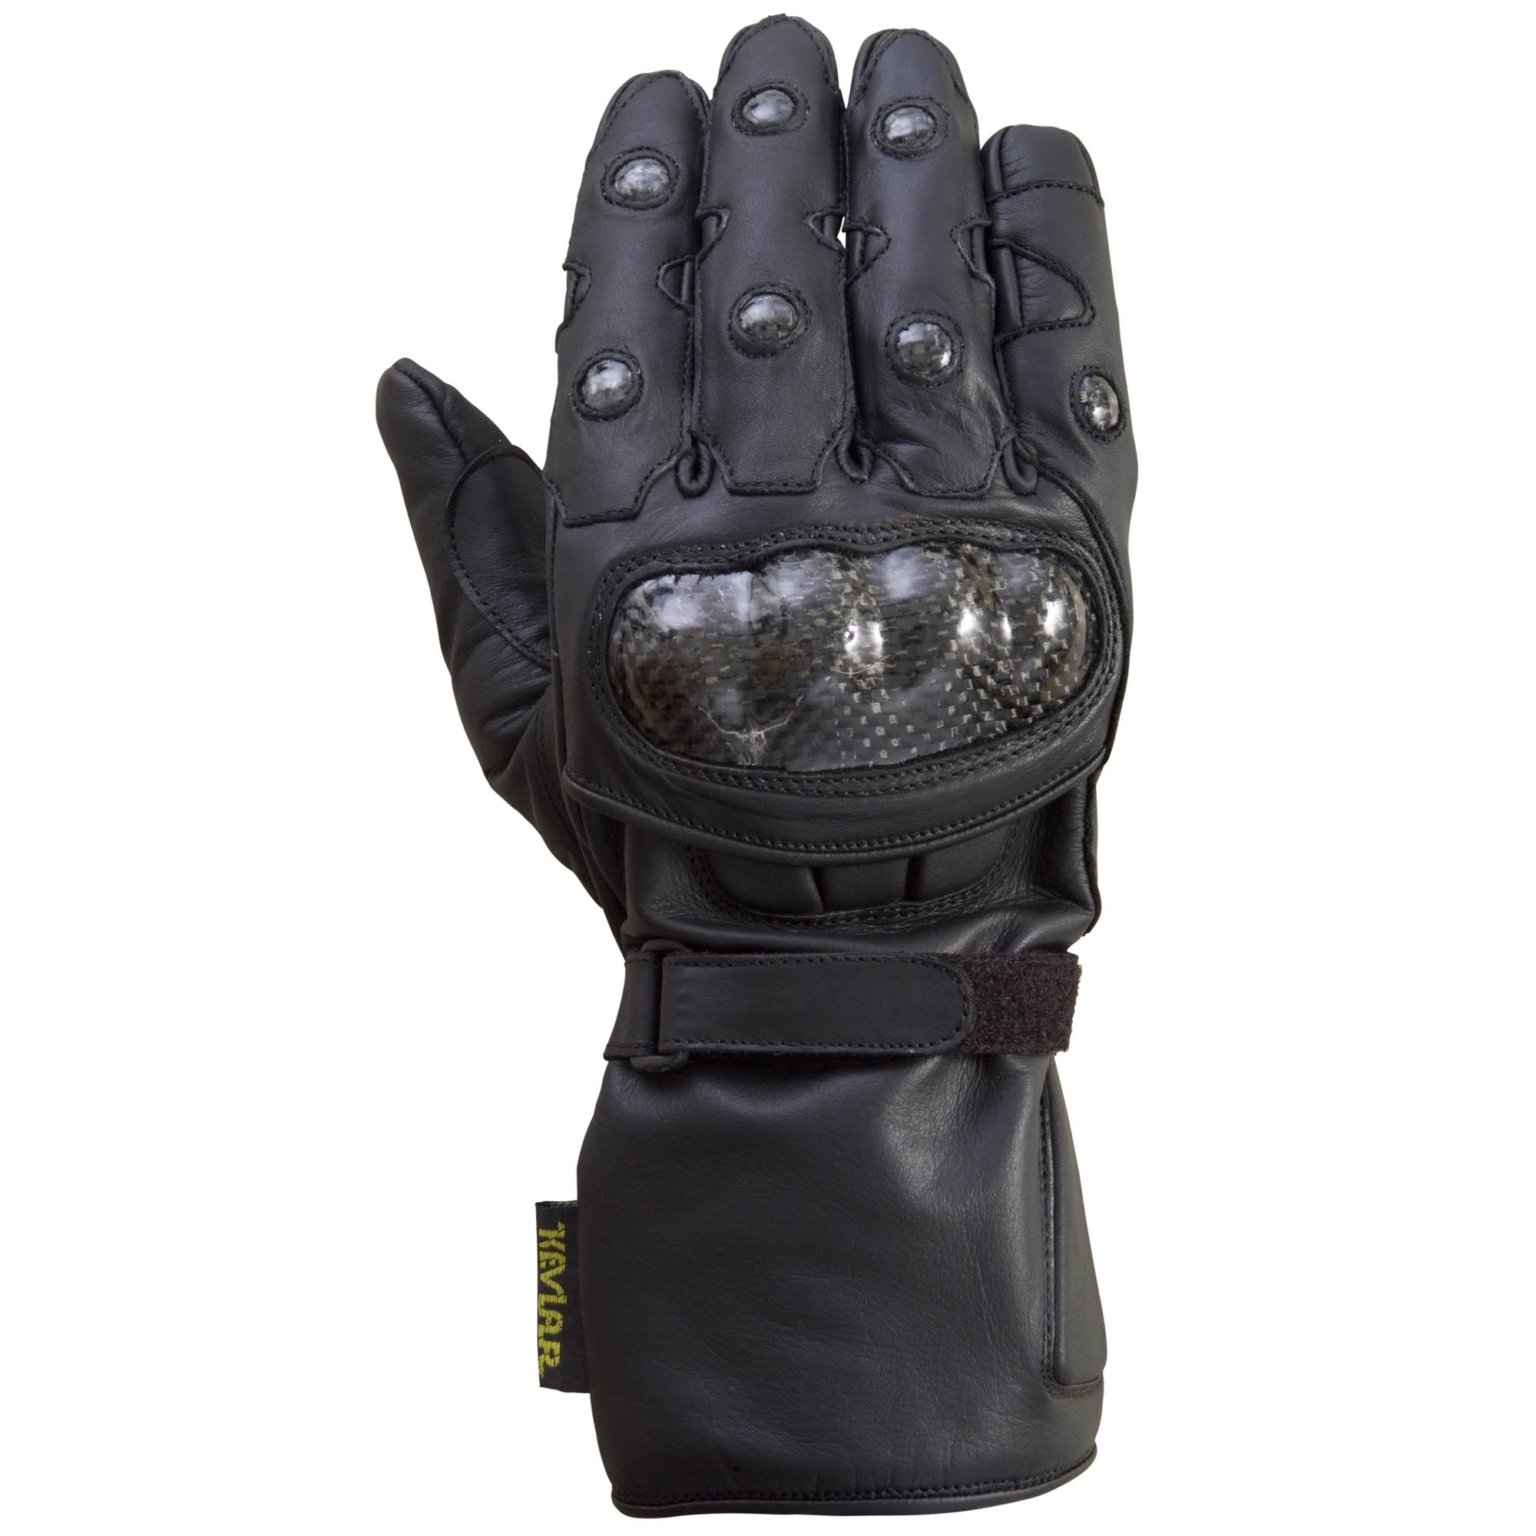 XtreemGear Carbon Fiber Leather Motorcycle Glove, Black